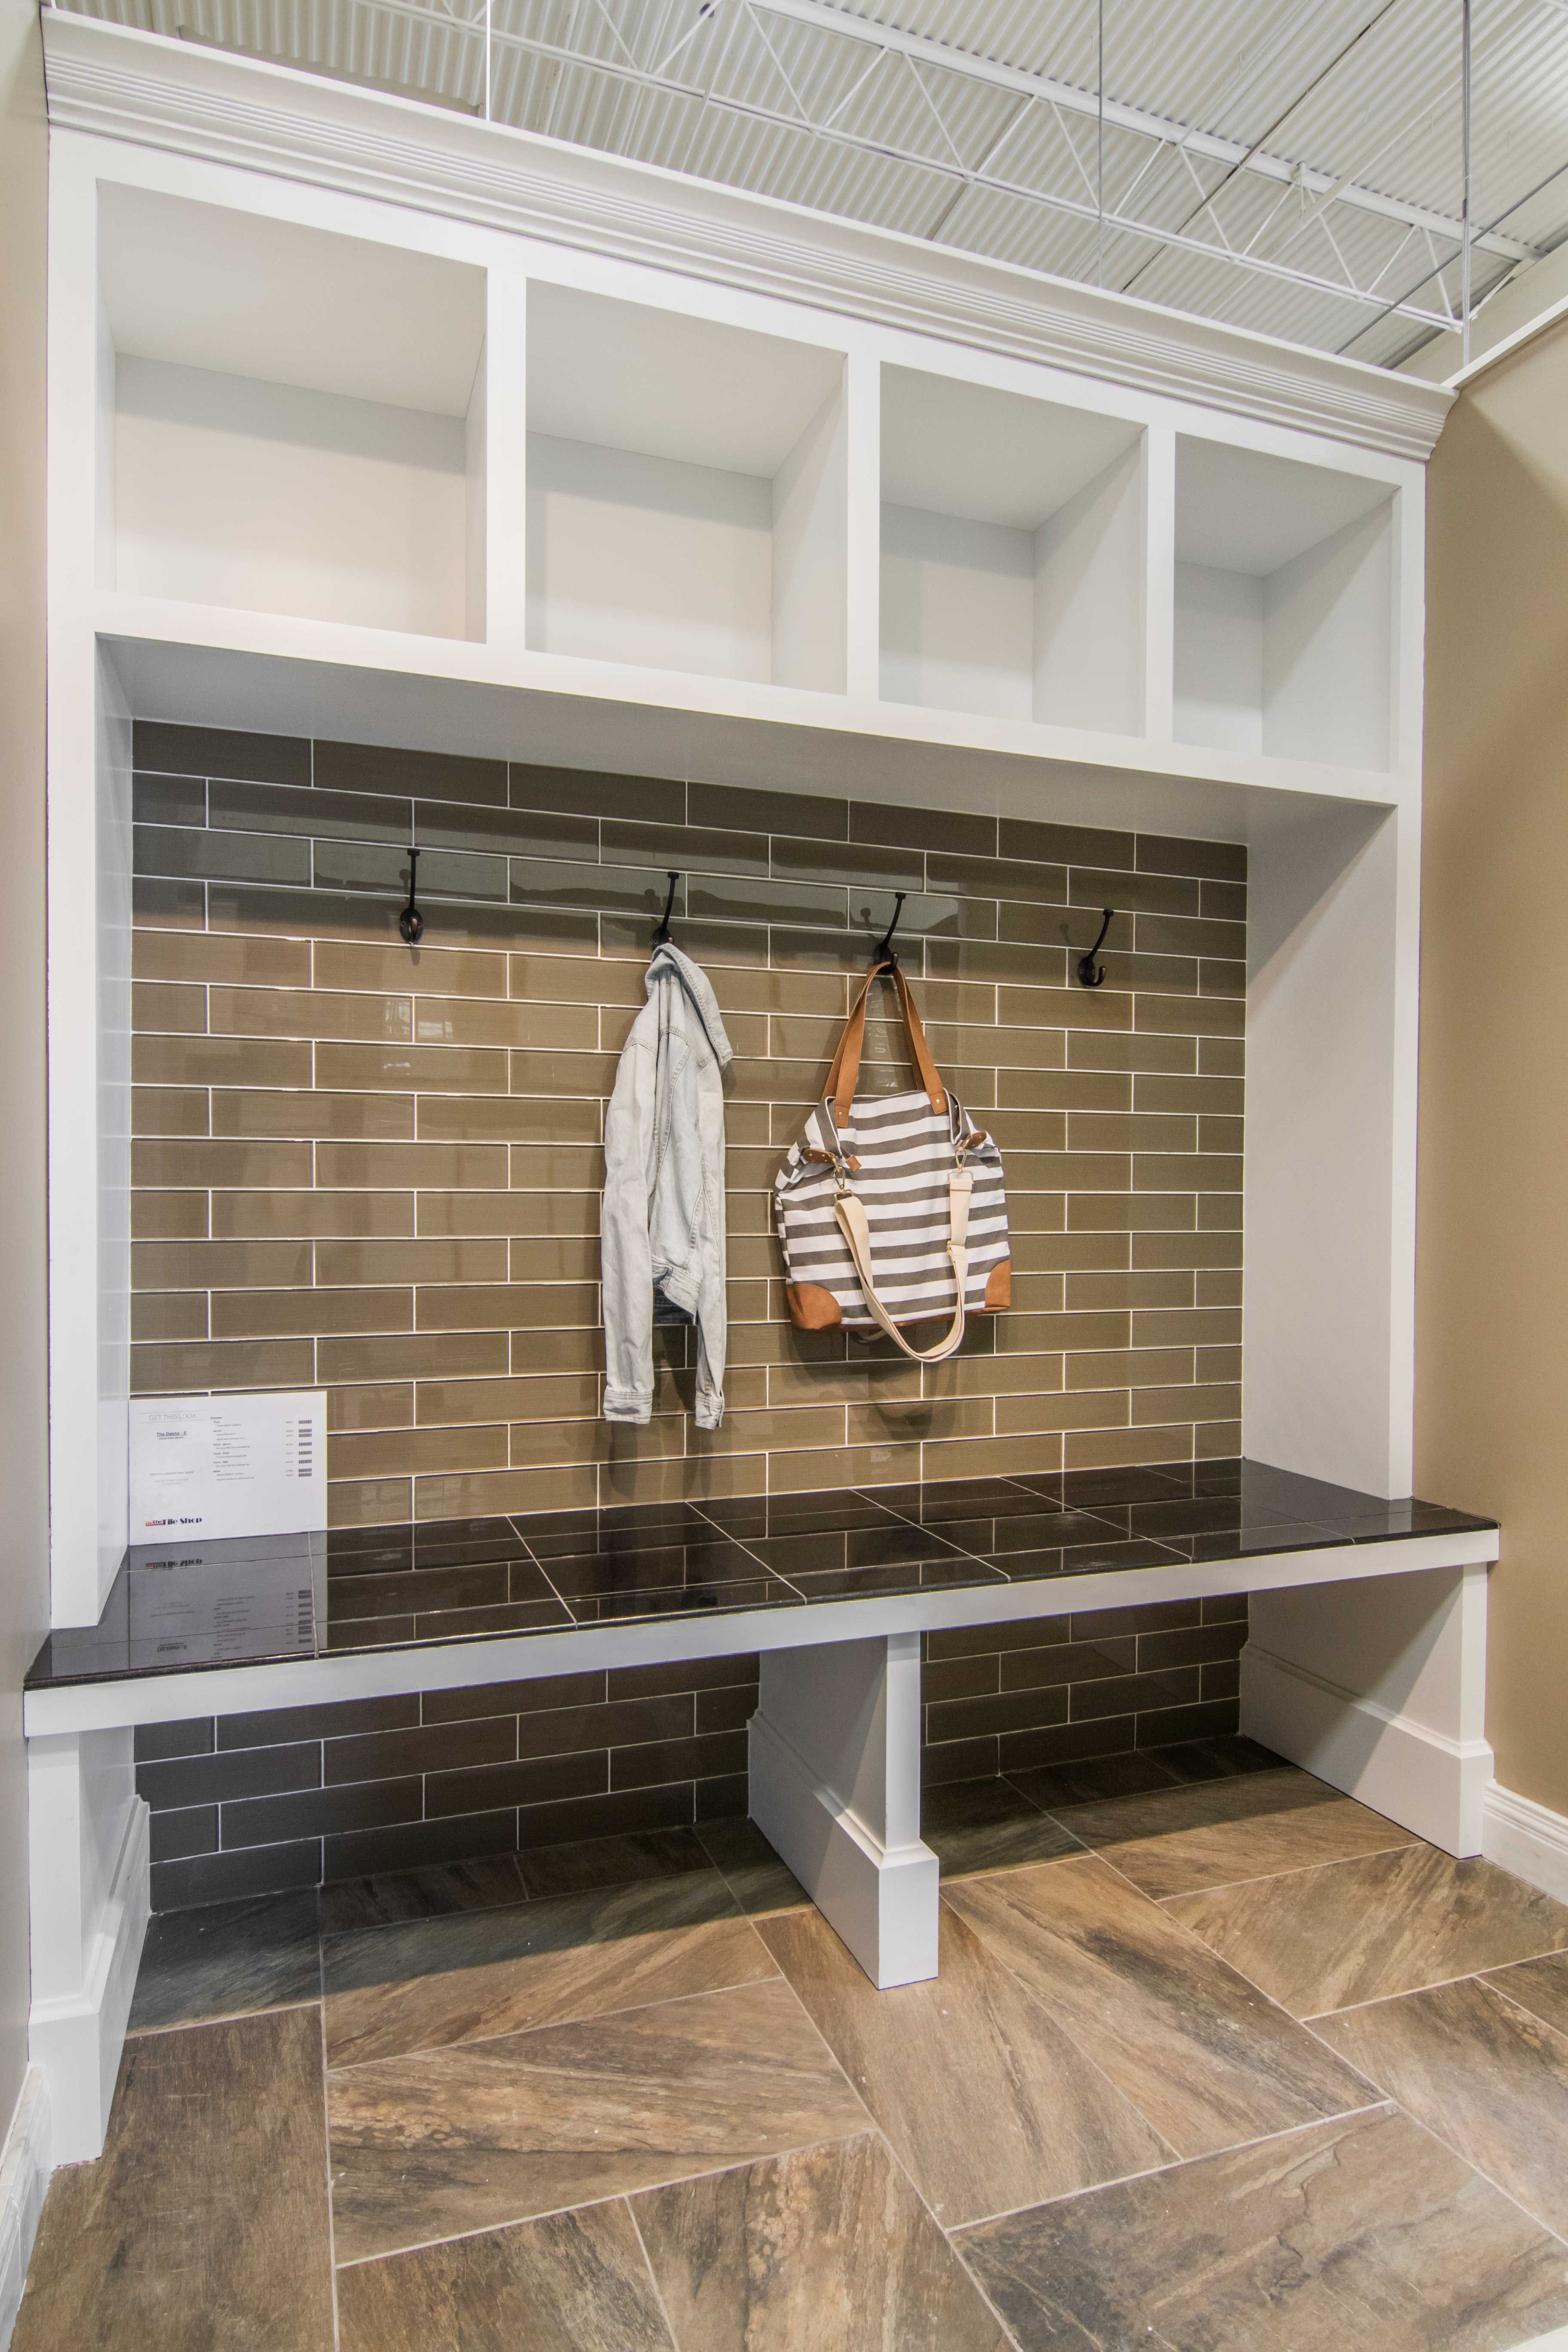 Home Depot Foyer Tile : Entryway mudroom khaki toned wall tile halsted glass